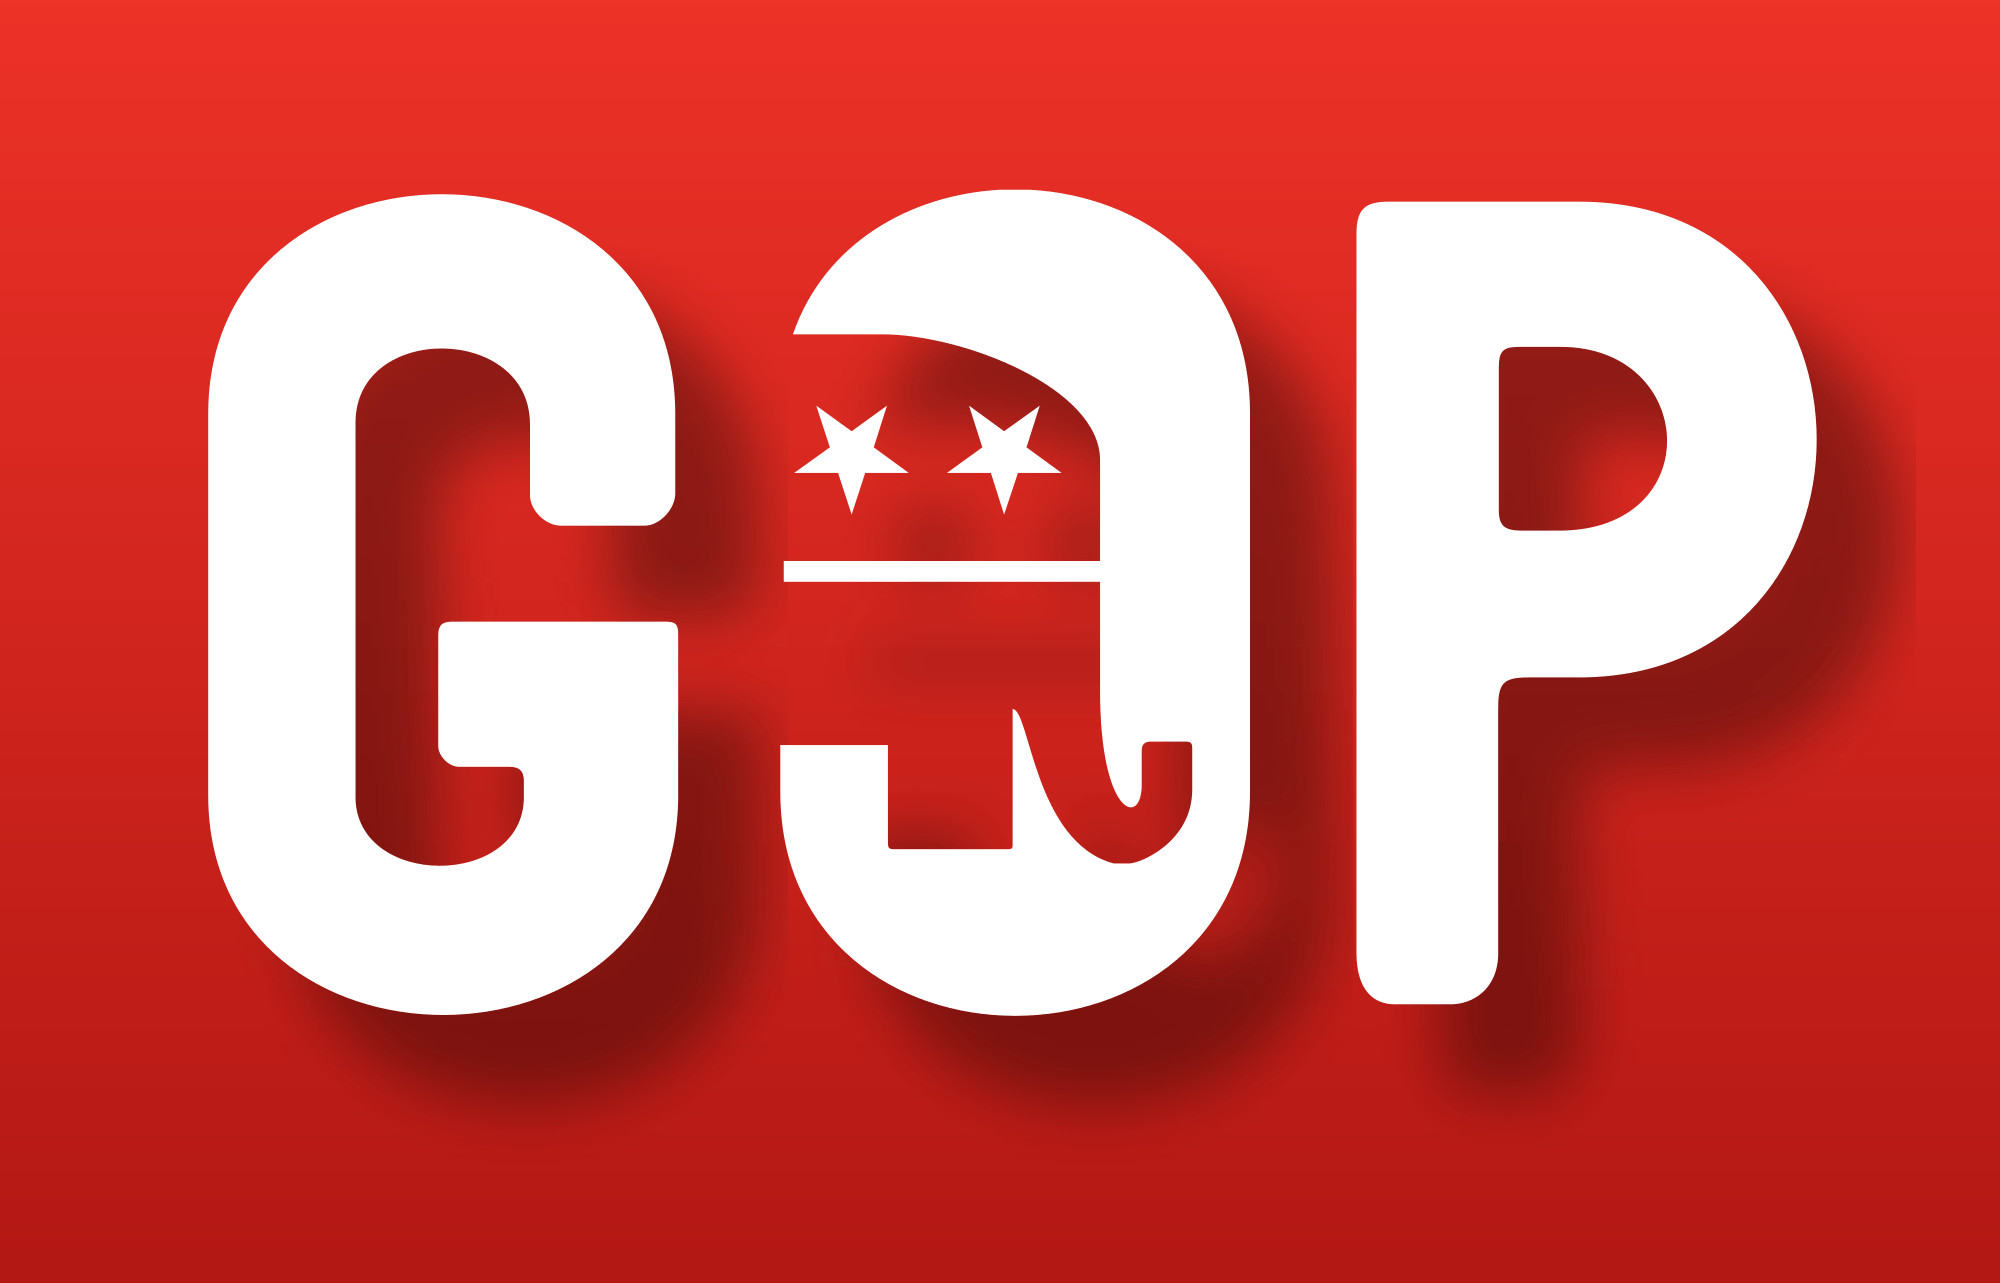 2000x1283 Republican Wallpaper - Viewing Gallery